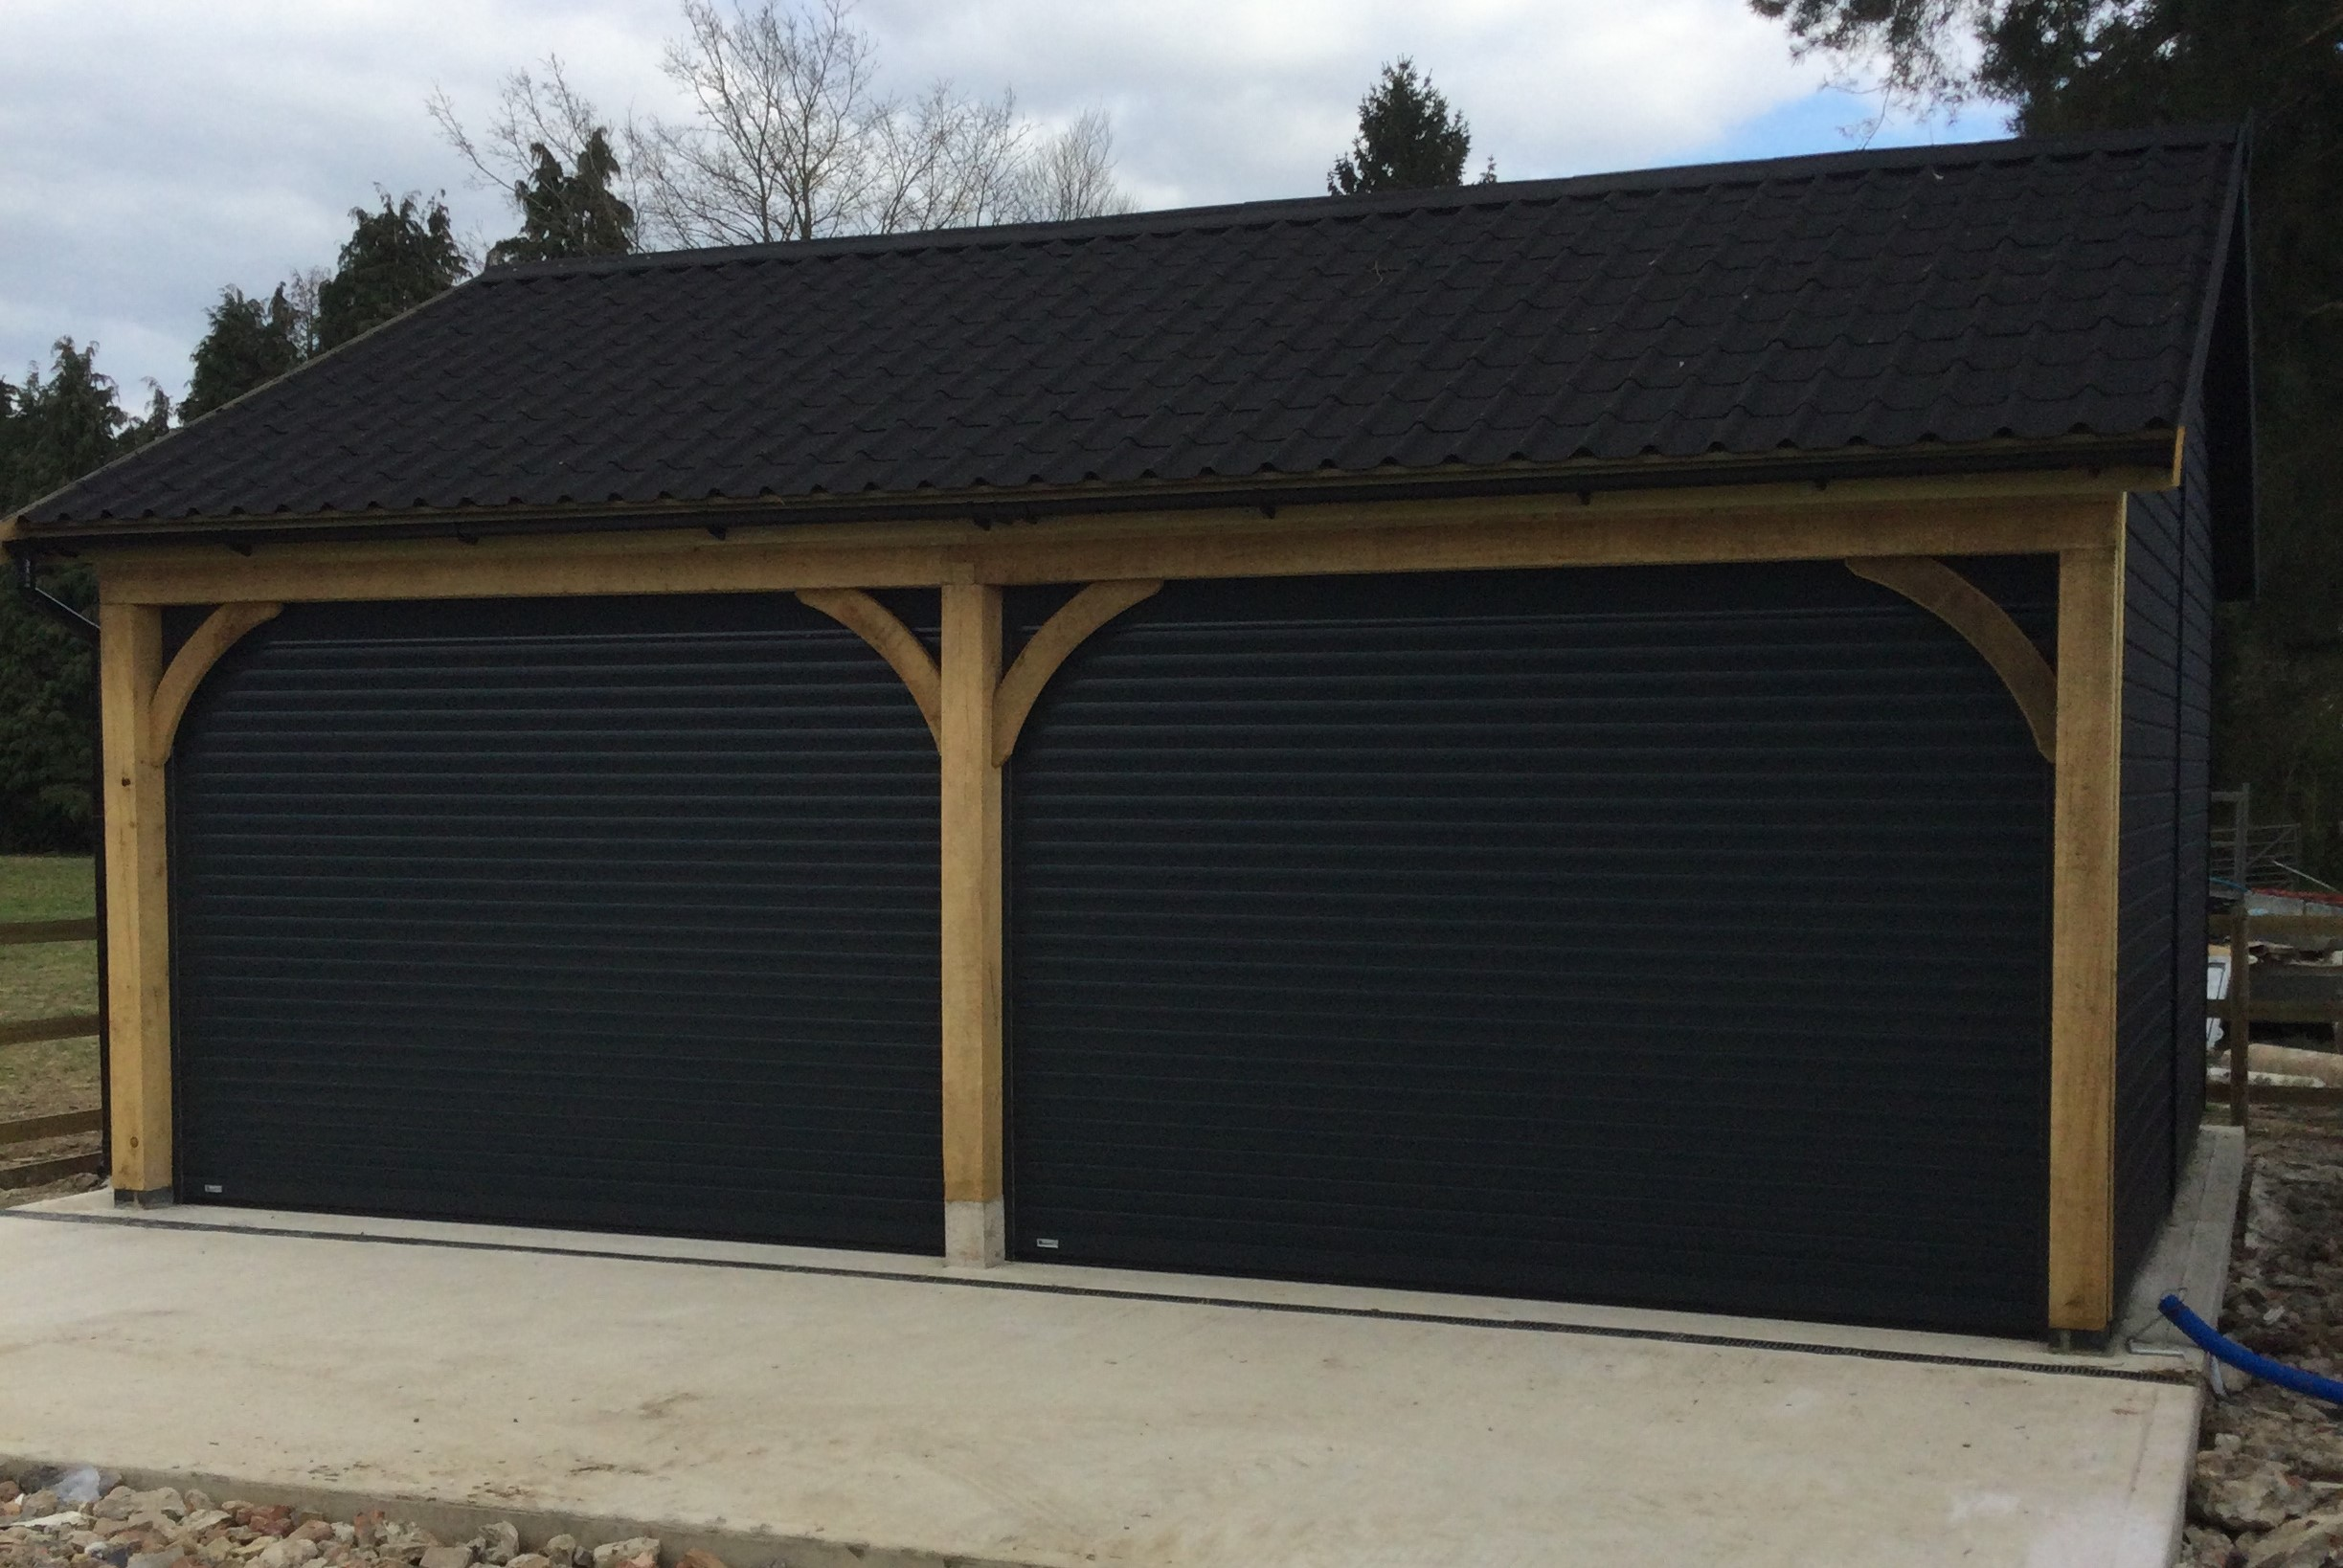 Graphite Grey Seceuroglide Roller Garage Doors